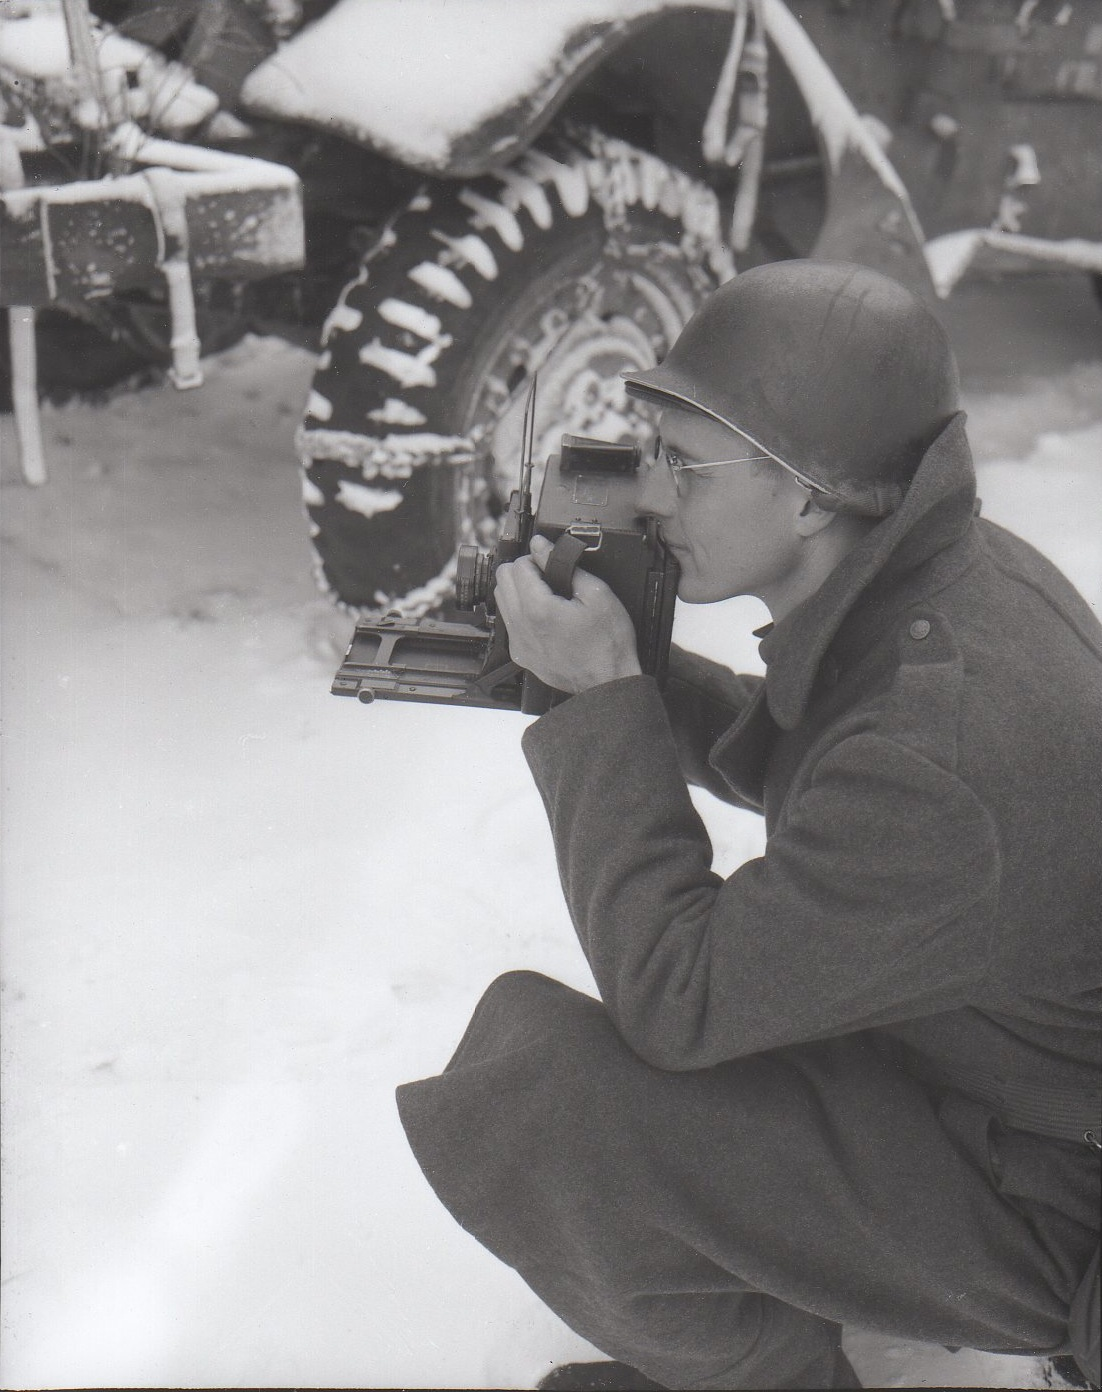 Bryan Allen, official WWII combat photographer and member of the 165th Signal Photo Company.